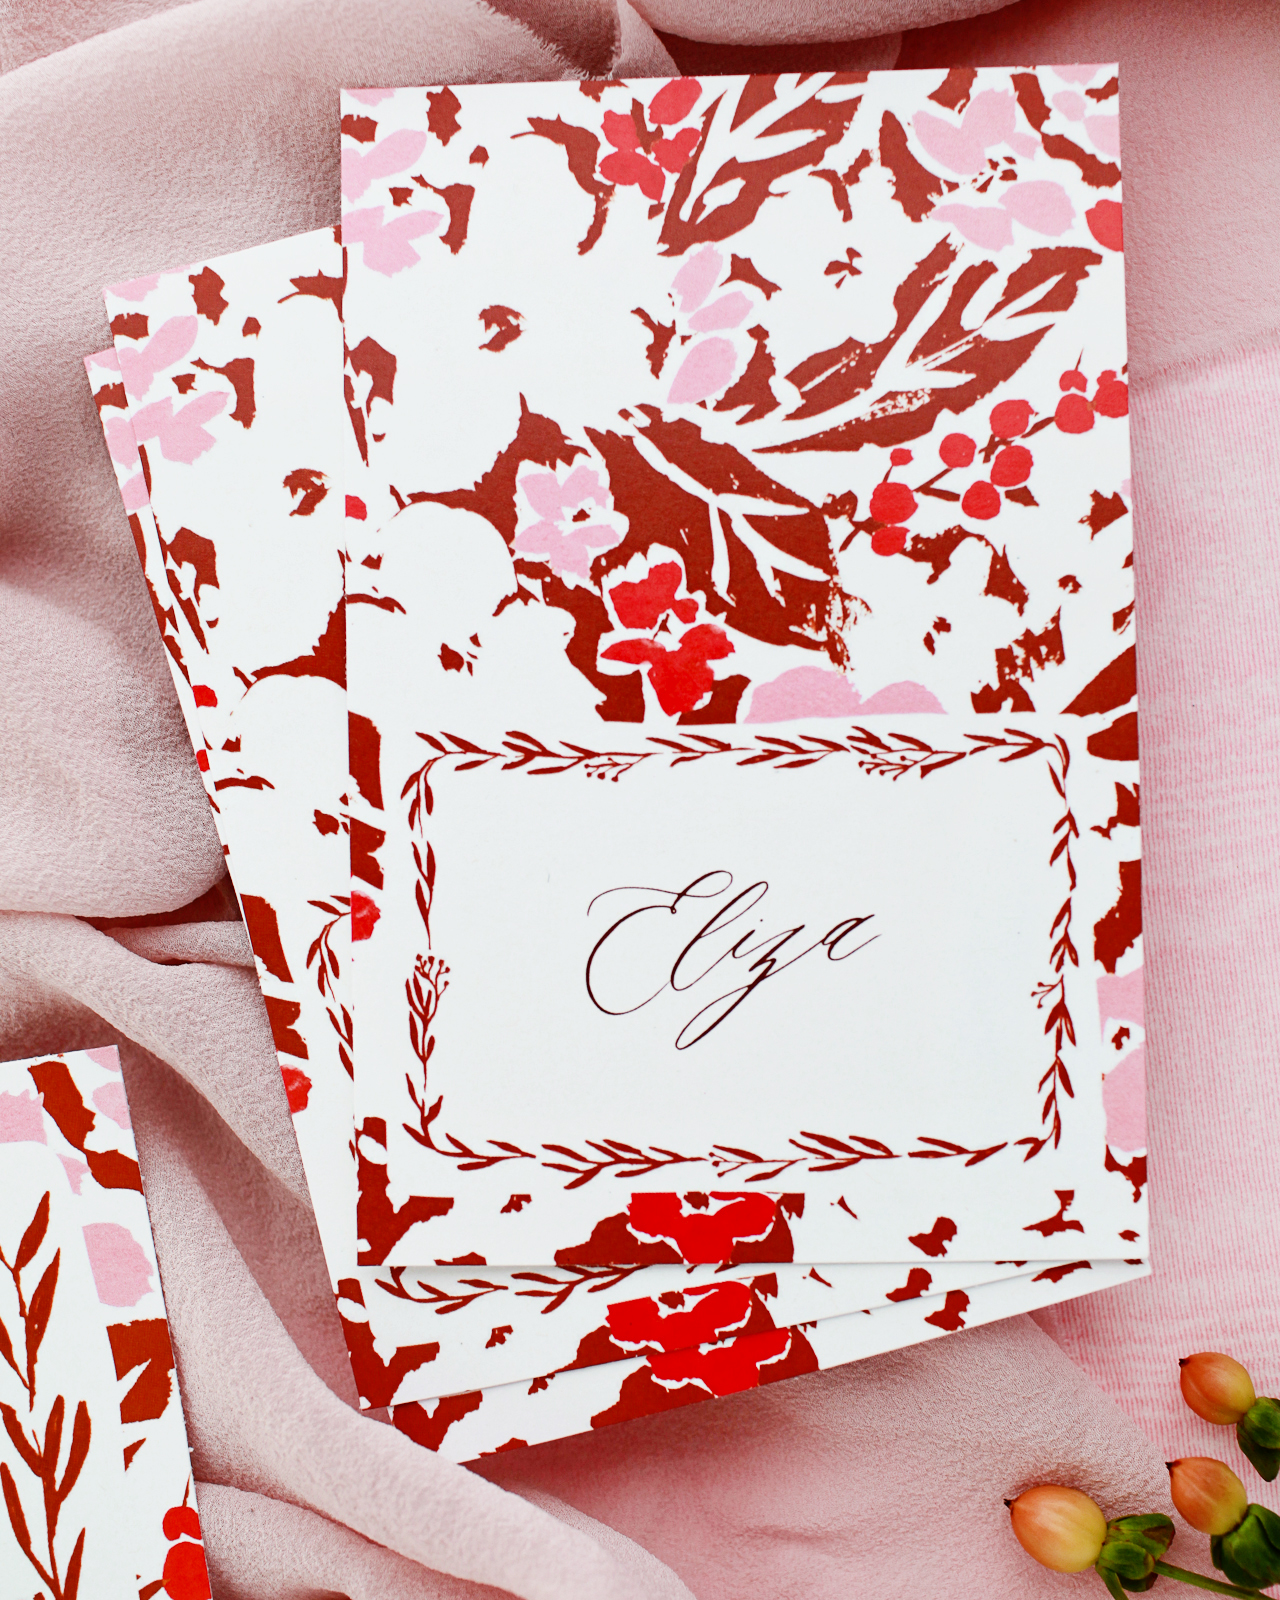 Printble Floral Thanksgiving Dinner Stationery by Juliet Meeks Design